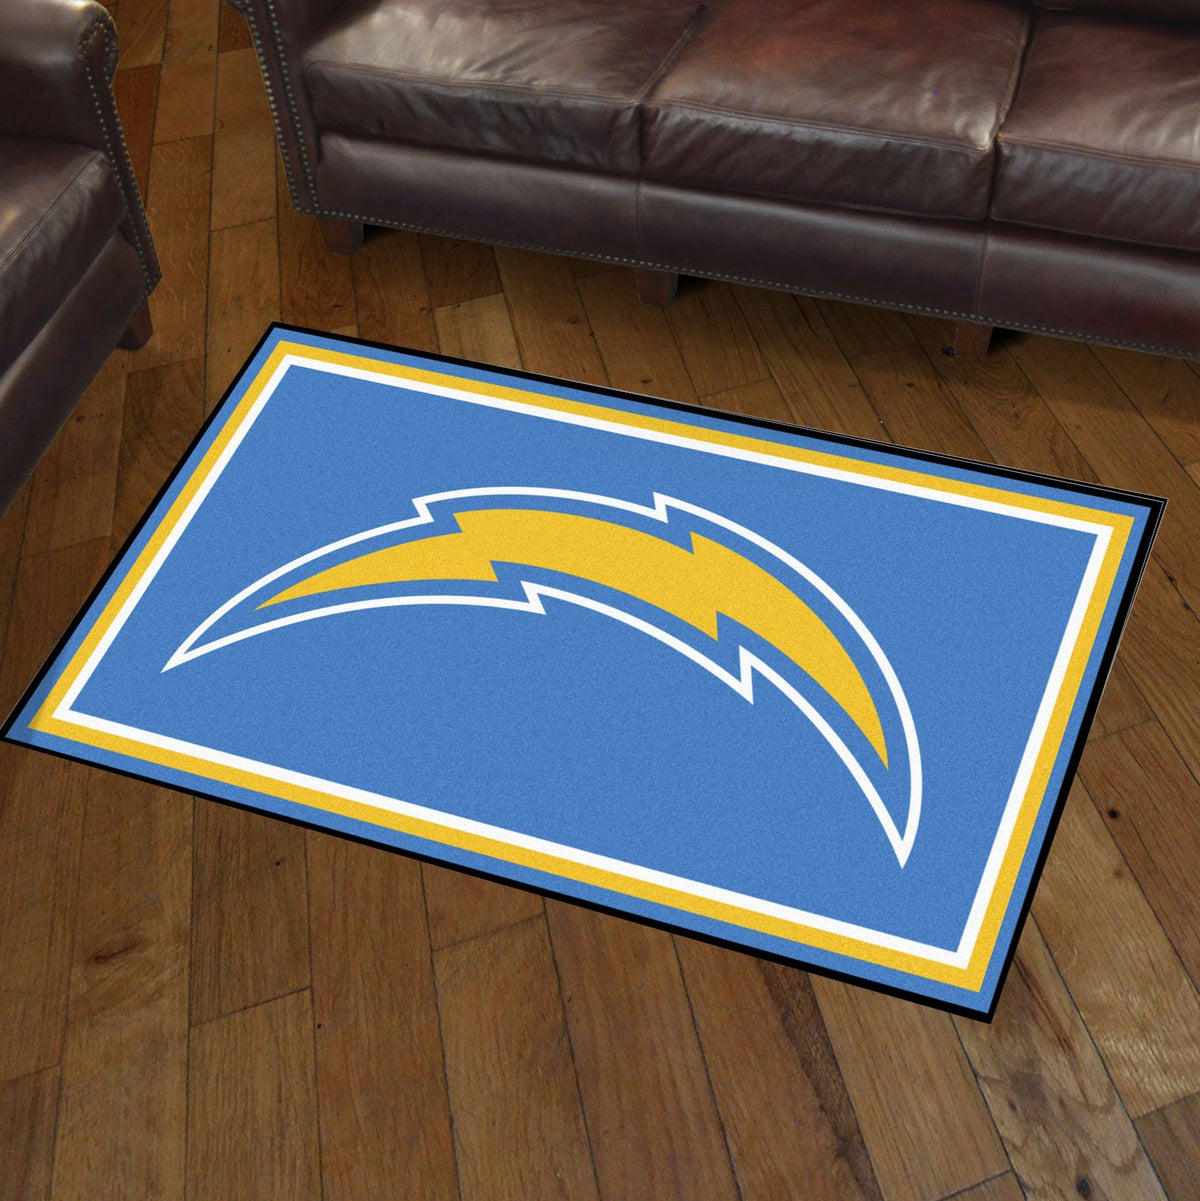 NFL - 3' x 5' Rug NFL Mats, Plush Rugs, 3x5 Rug, NFL, Home Fan Mats Los Angeles Chargers